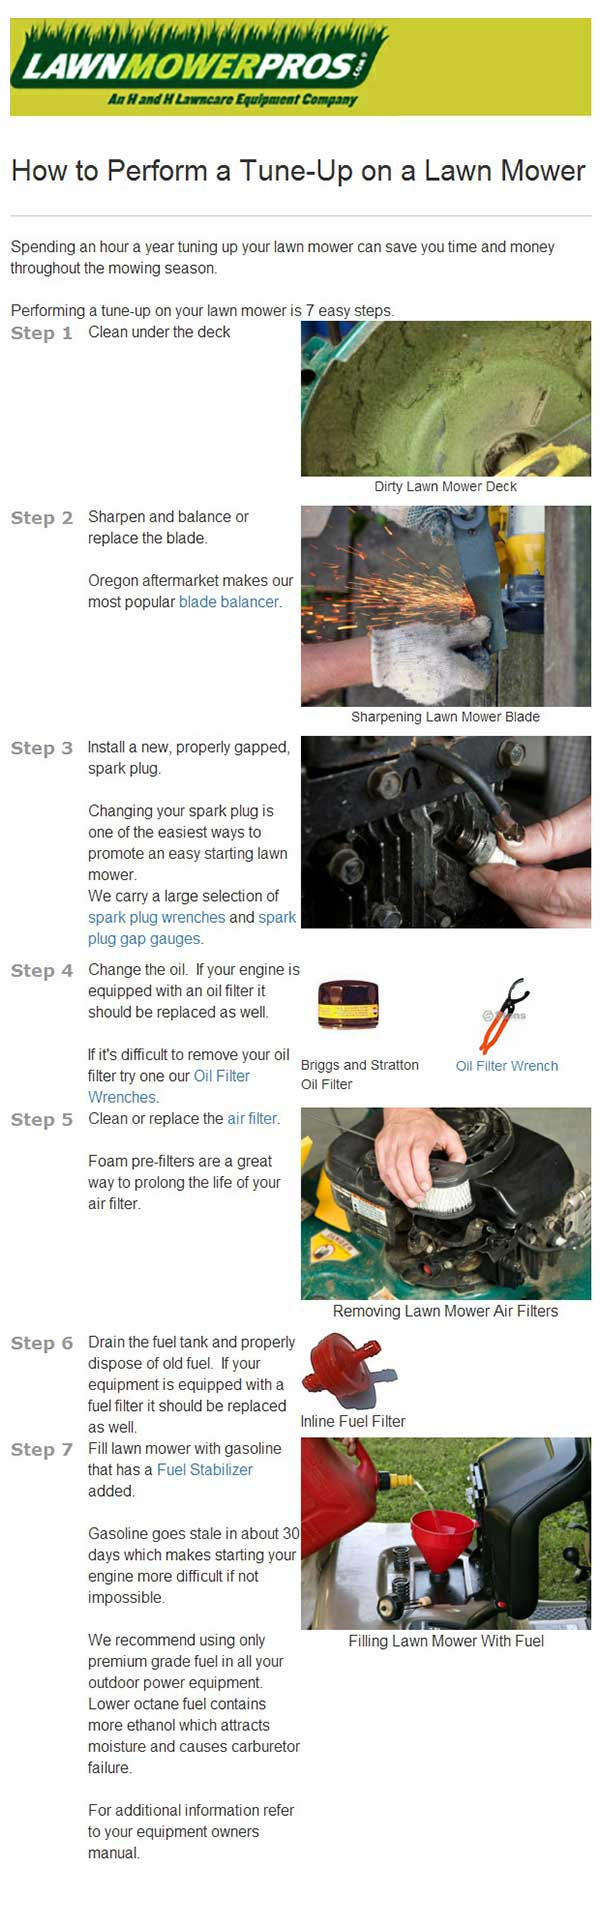 how-to-tune-up-a-lawn-mower